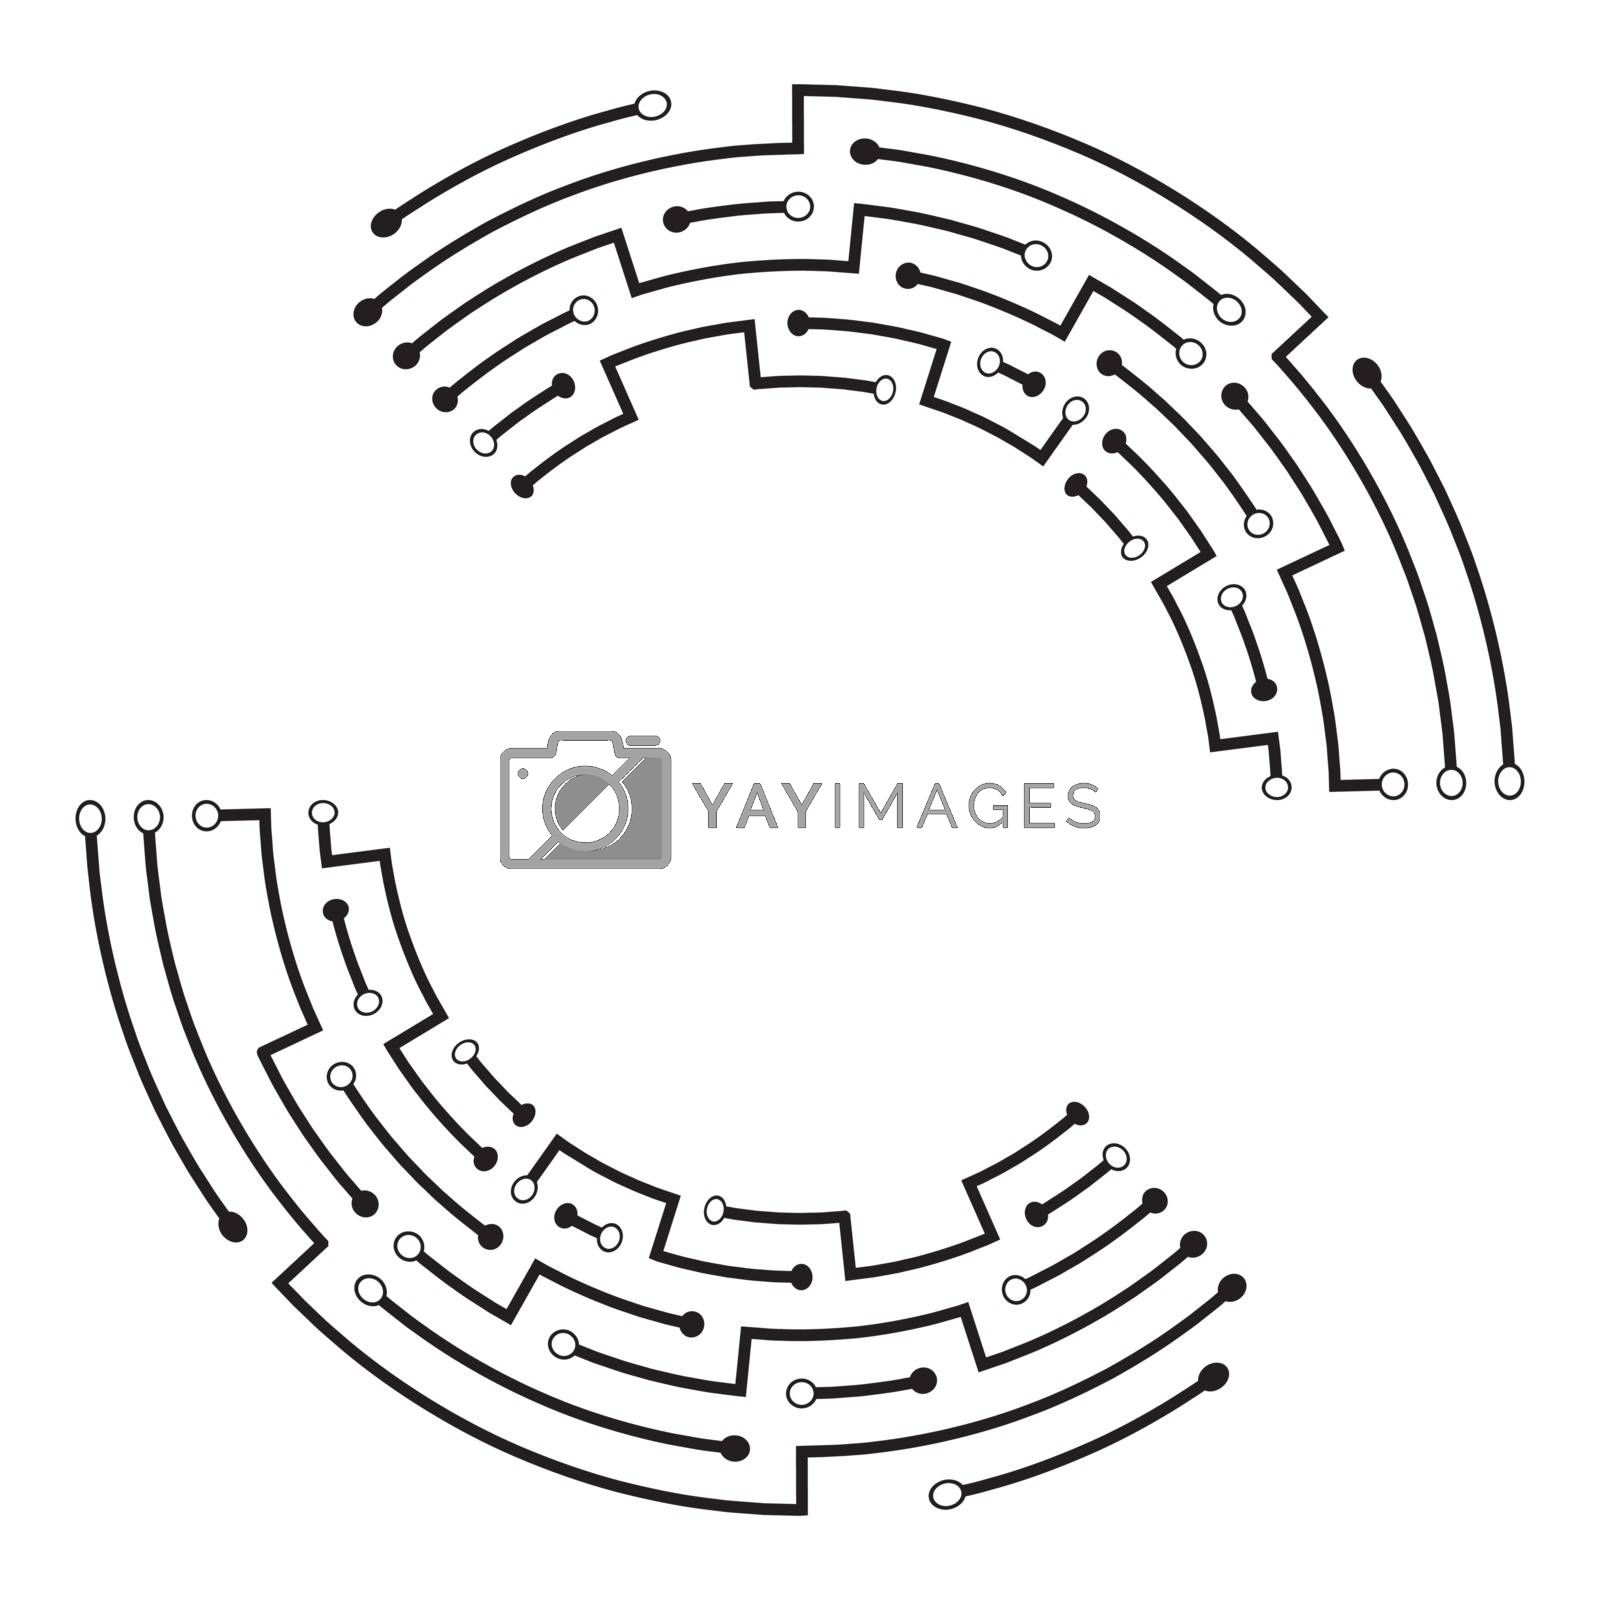 Abstract connection frame. Circular futuristic scheme. Structure of circuit board monochrome graphic. Motherboard technology ring. Mechanism of electronic communication device. Modern processor design